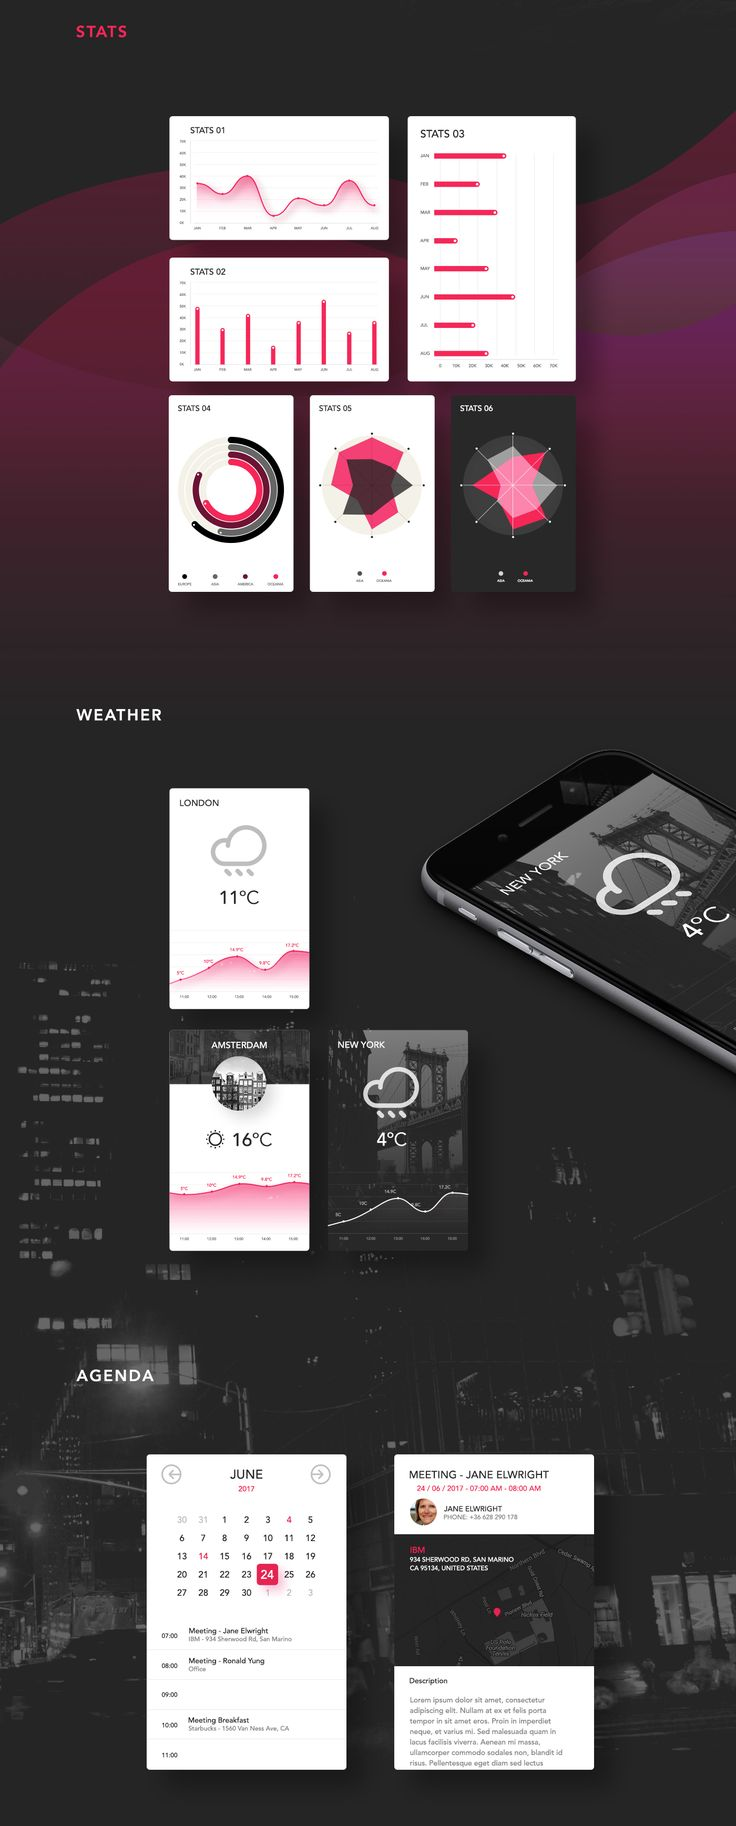 AEREA UI KIT +50 Free elements UI KIT For personal and commercial use. PSD Format